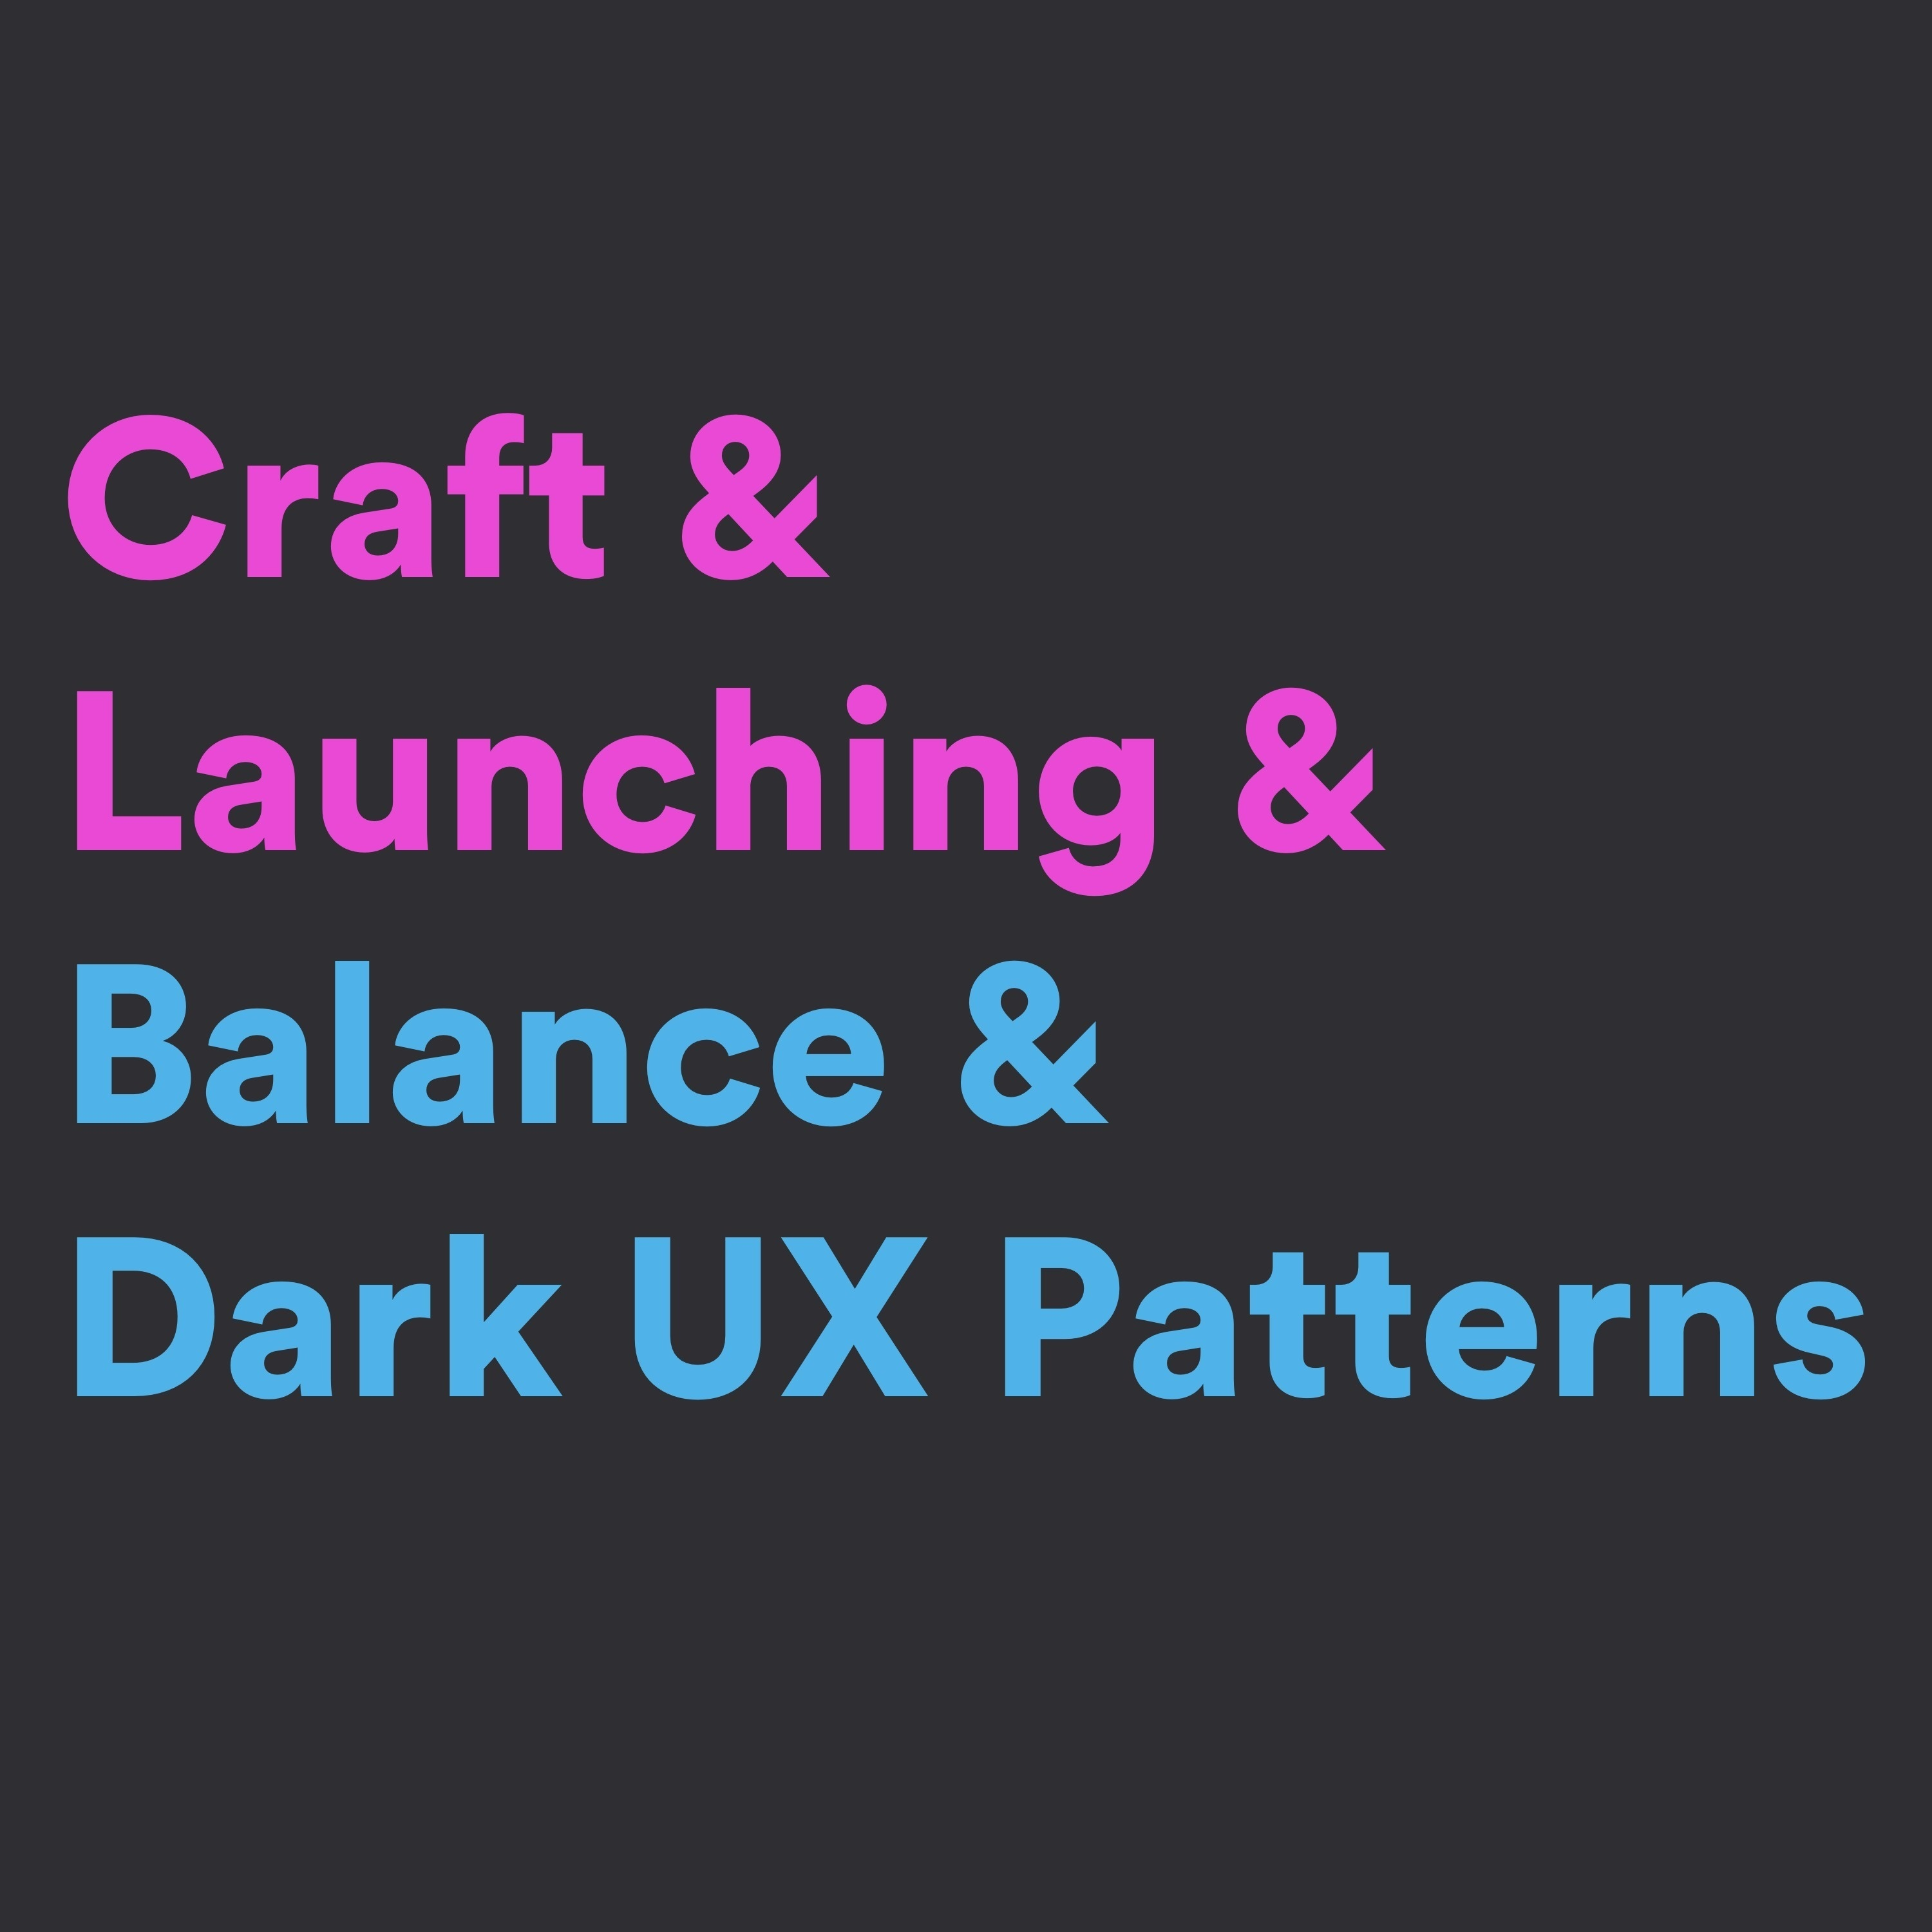 Craft & Launching & Balance & Dark UX Patterns